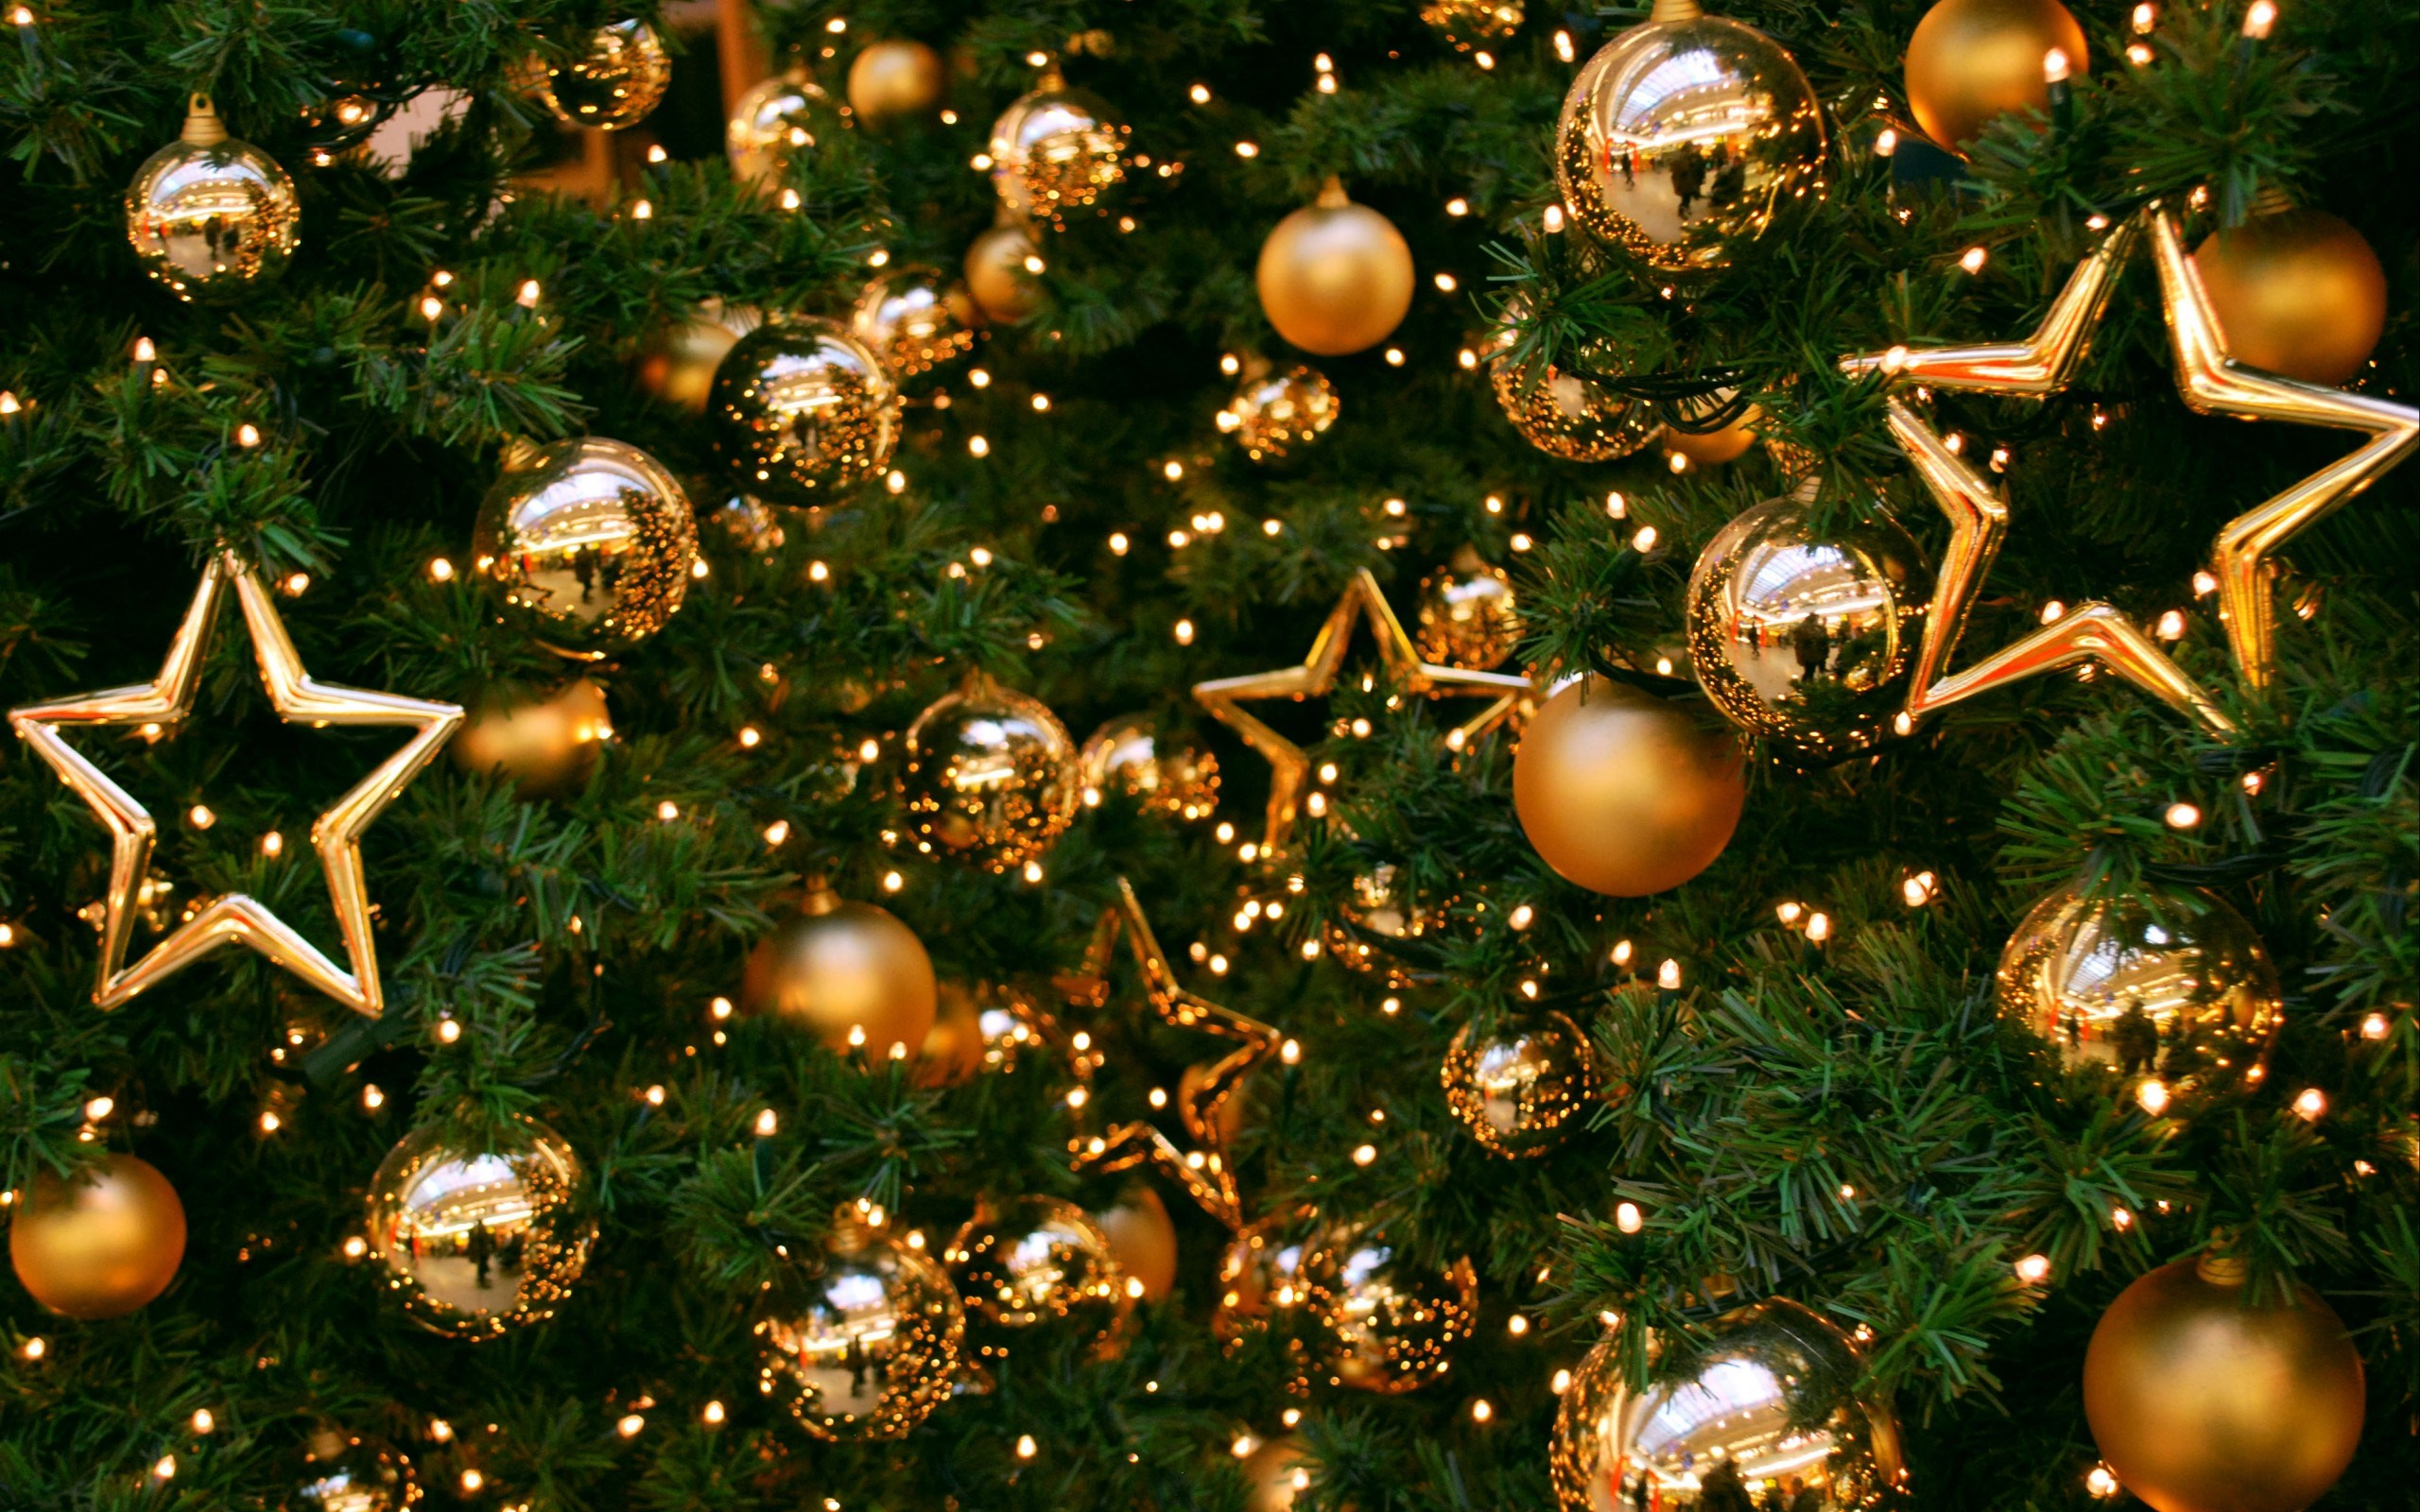 Wonderful Holiday Decorations wallpaper | 2560x1600 | #26627